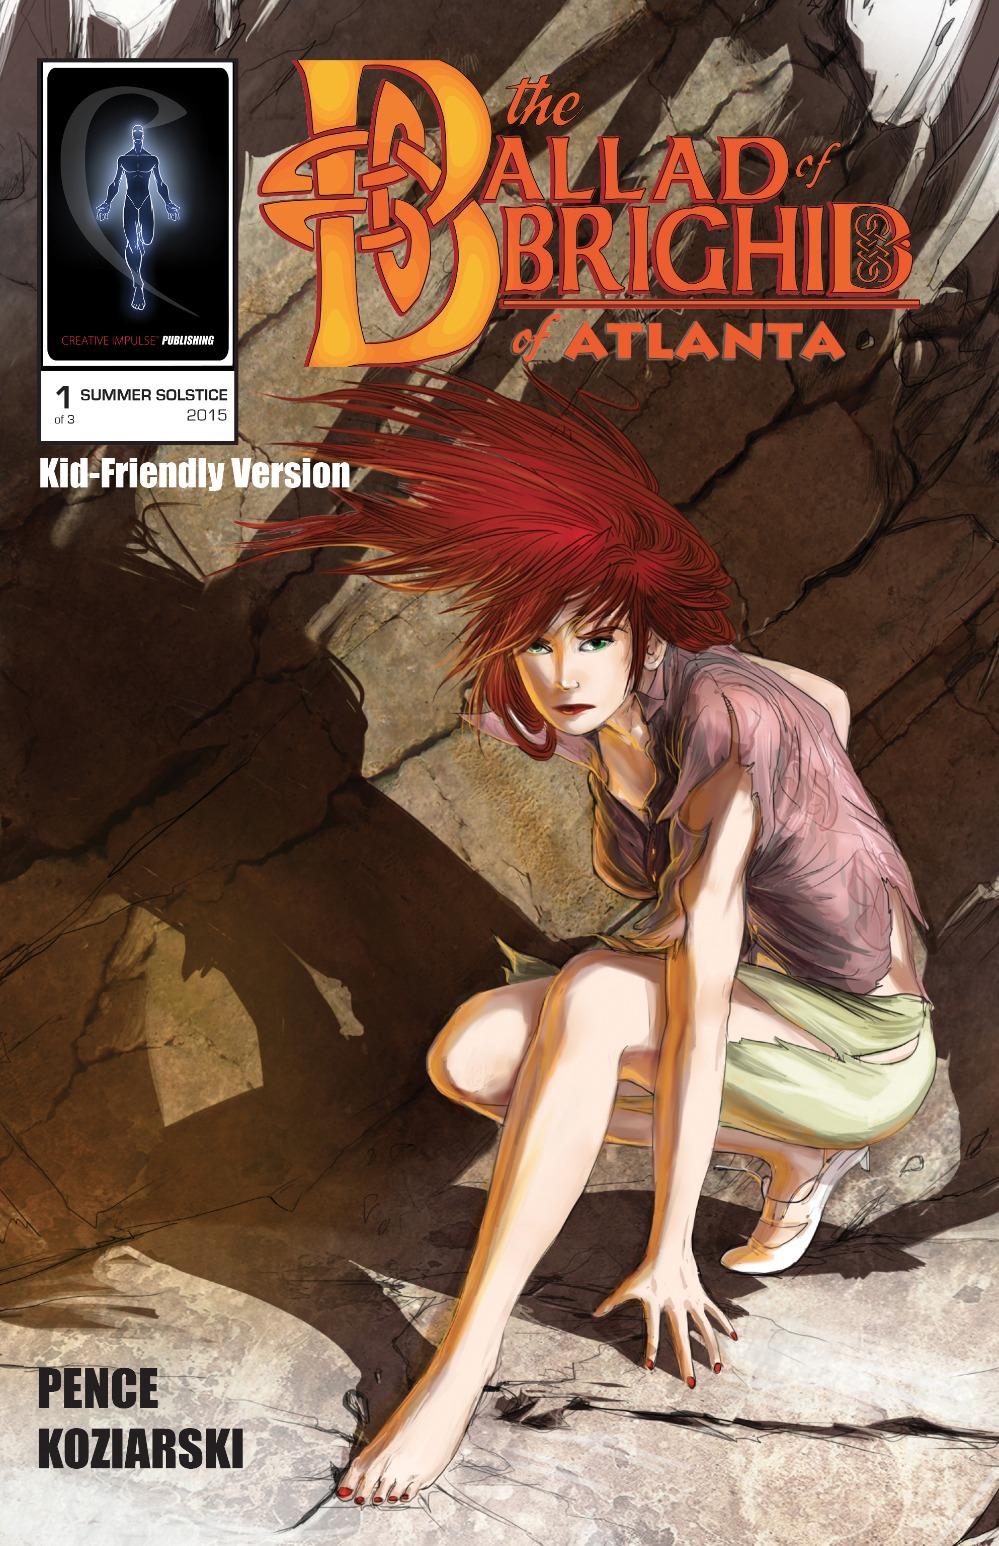 The Ballad of Brighid of Atlanta - Chapter 1 (Kid-Friendly Version)